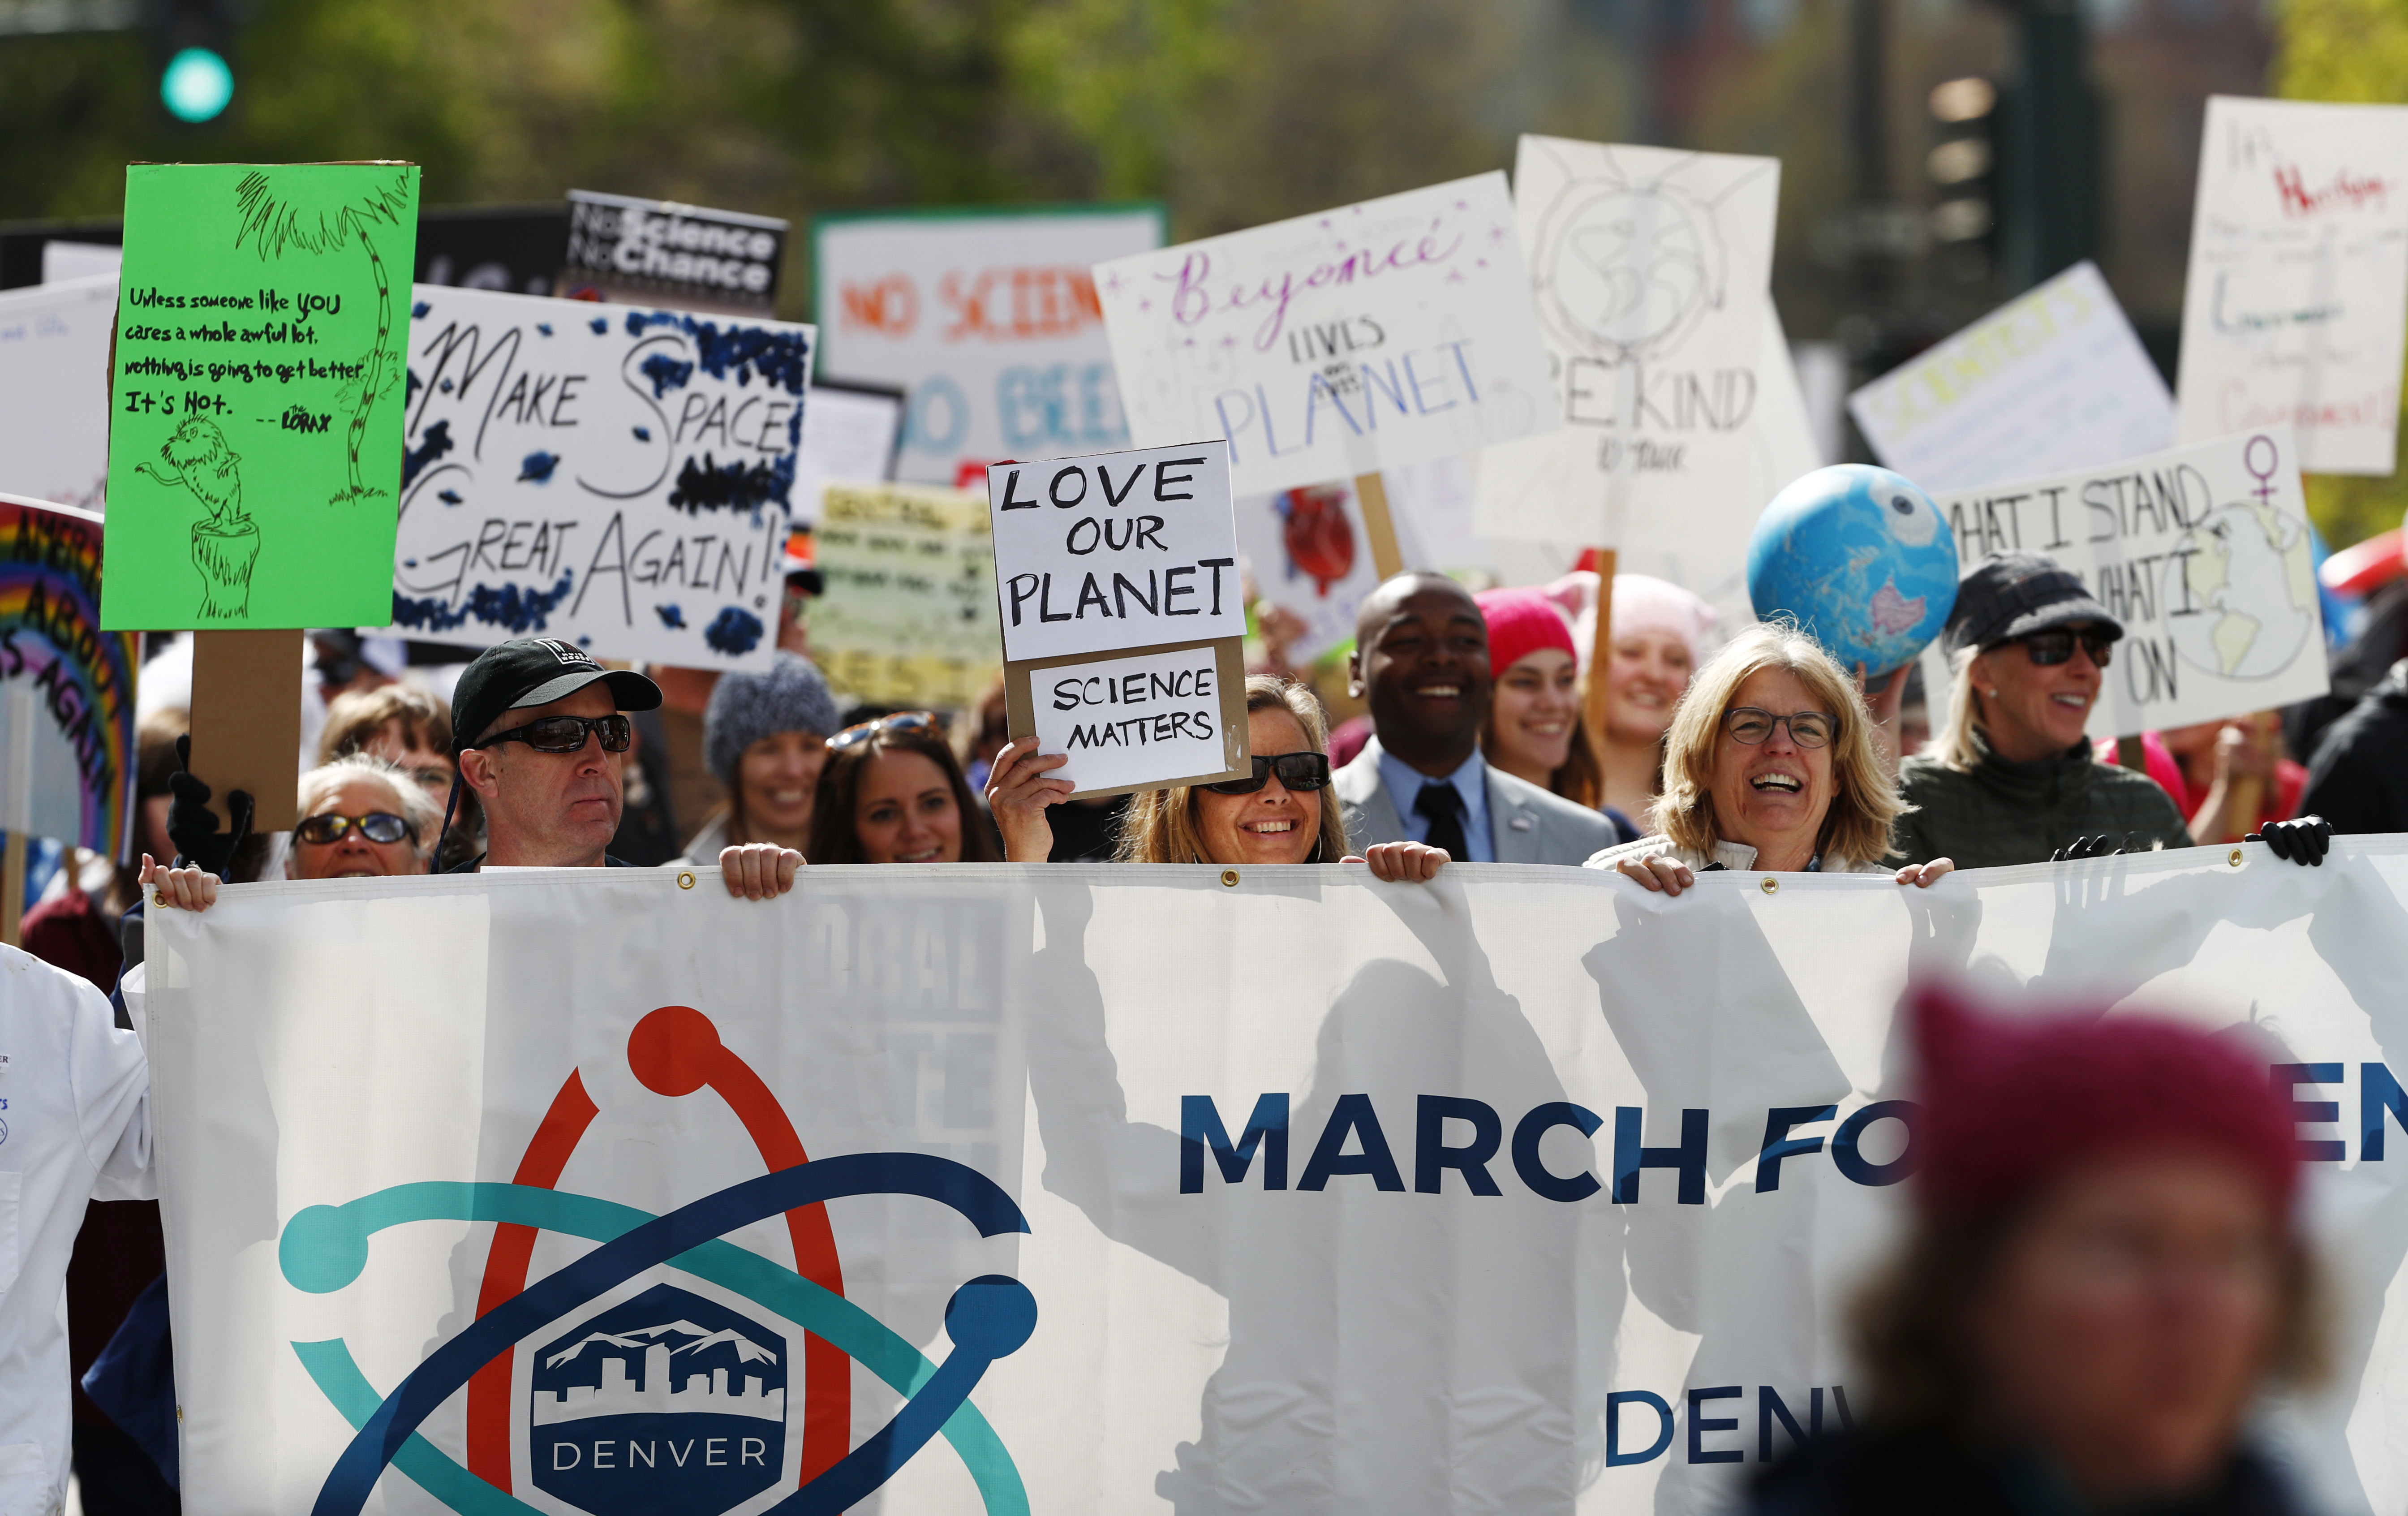 A large crowd marching for science with a banner in front of them and many signs.